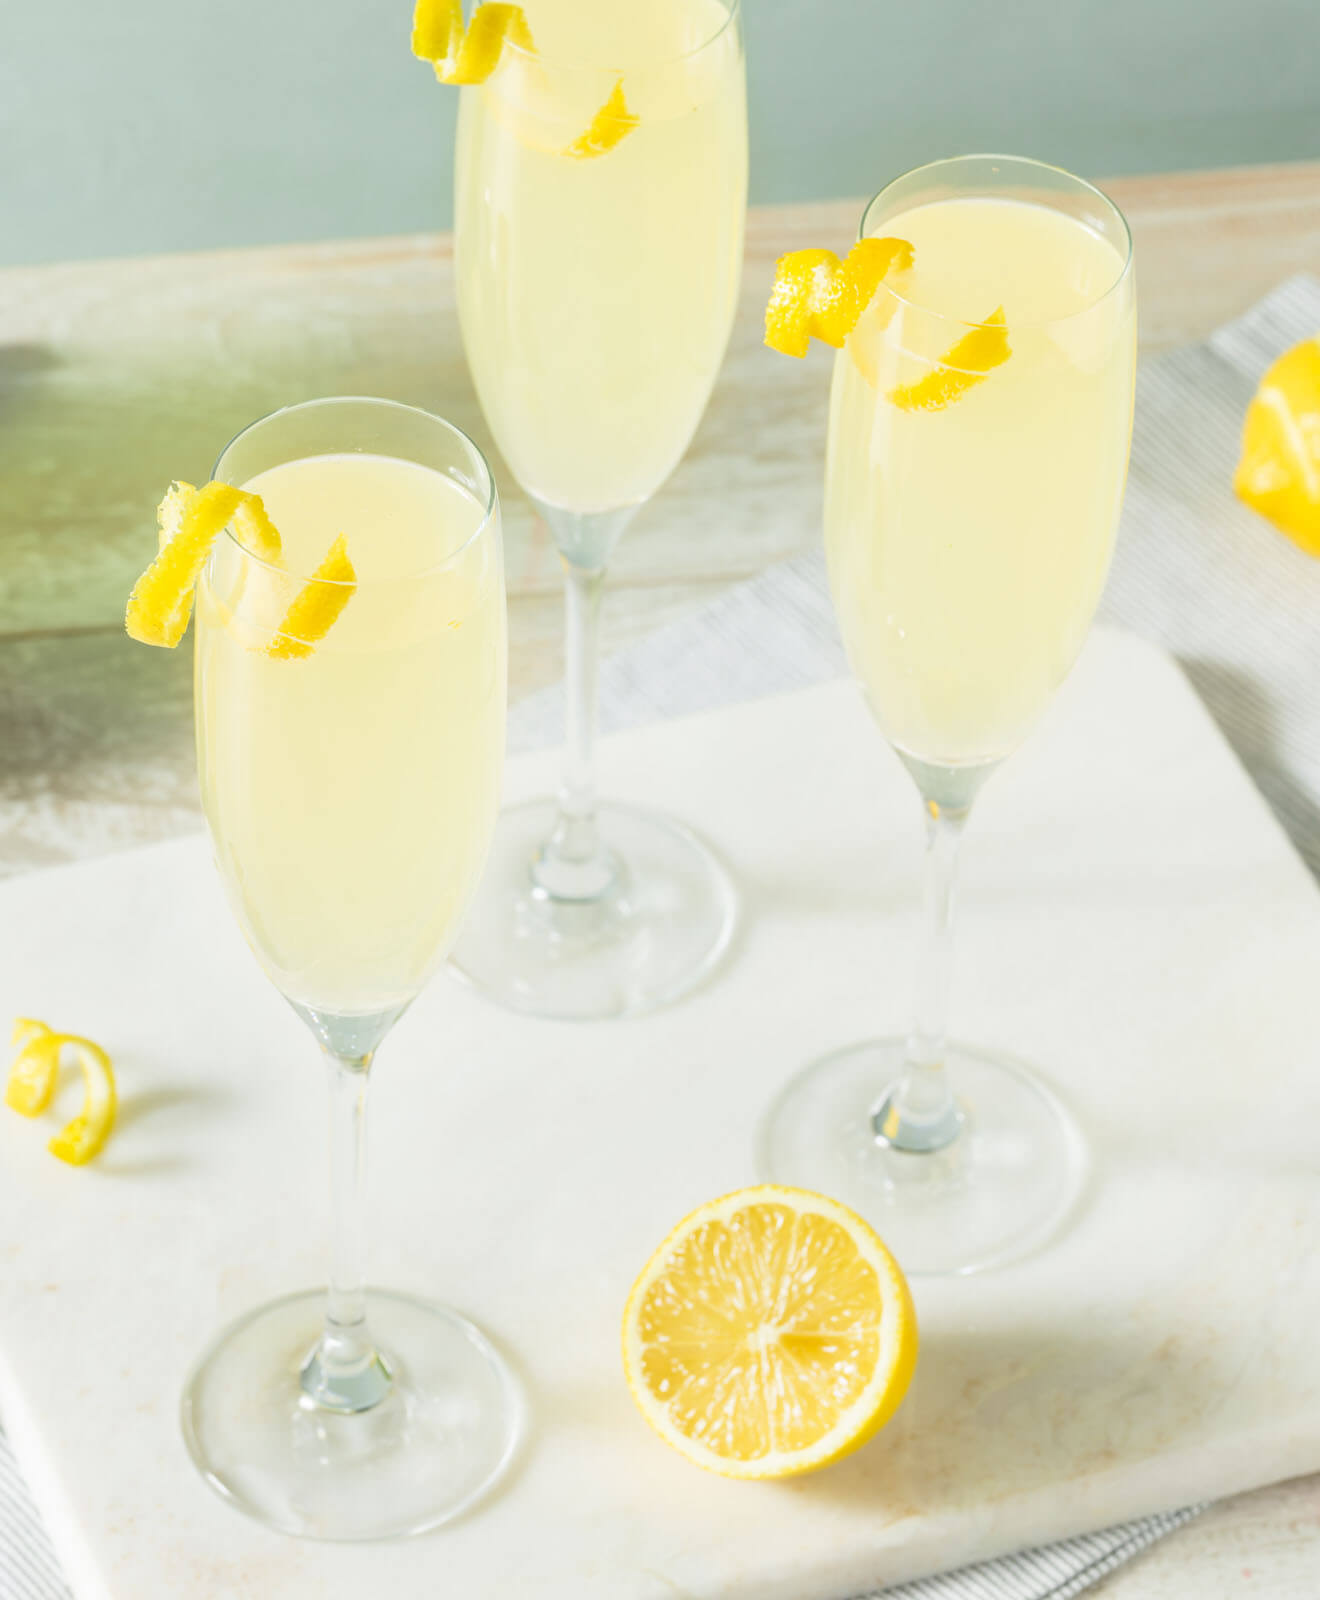 French 75 cocktails, with lemon garnish, tray and lemons